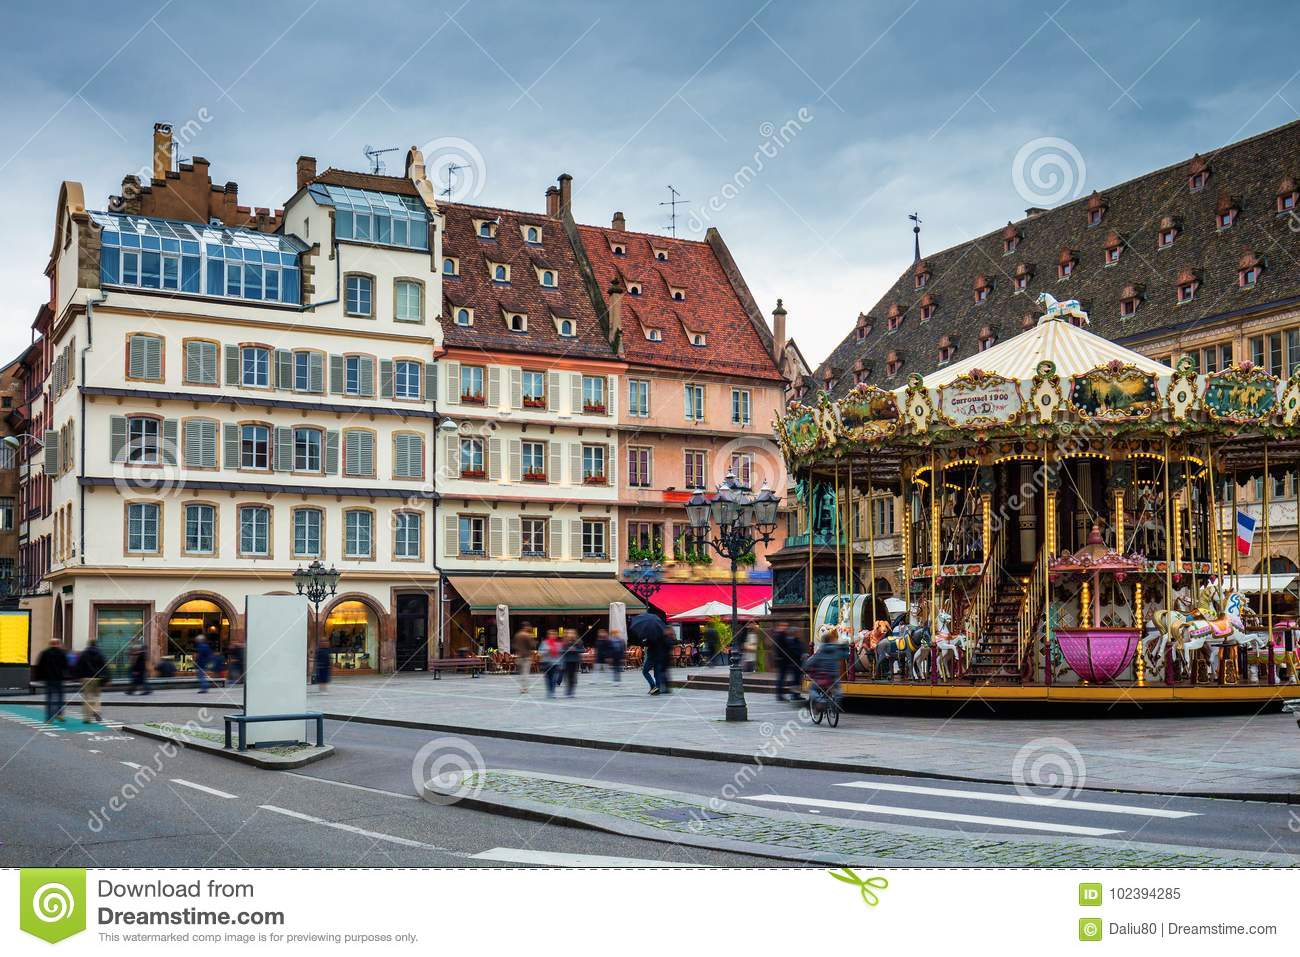 Beautiful view of the historic town of Strasbourg, colorful hous